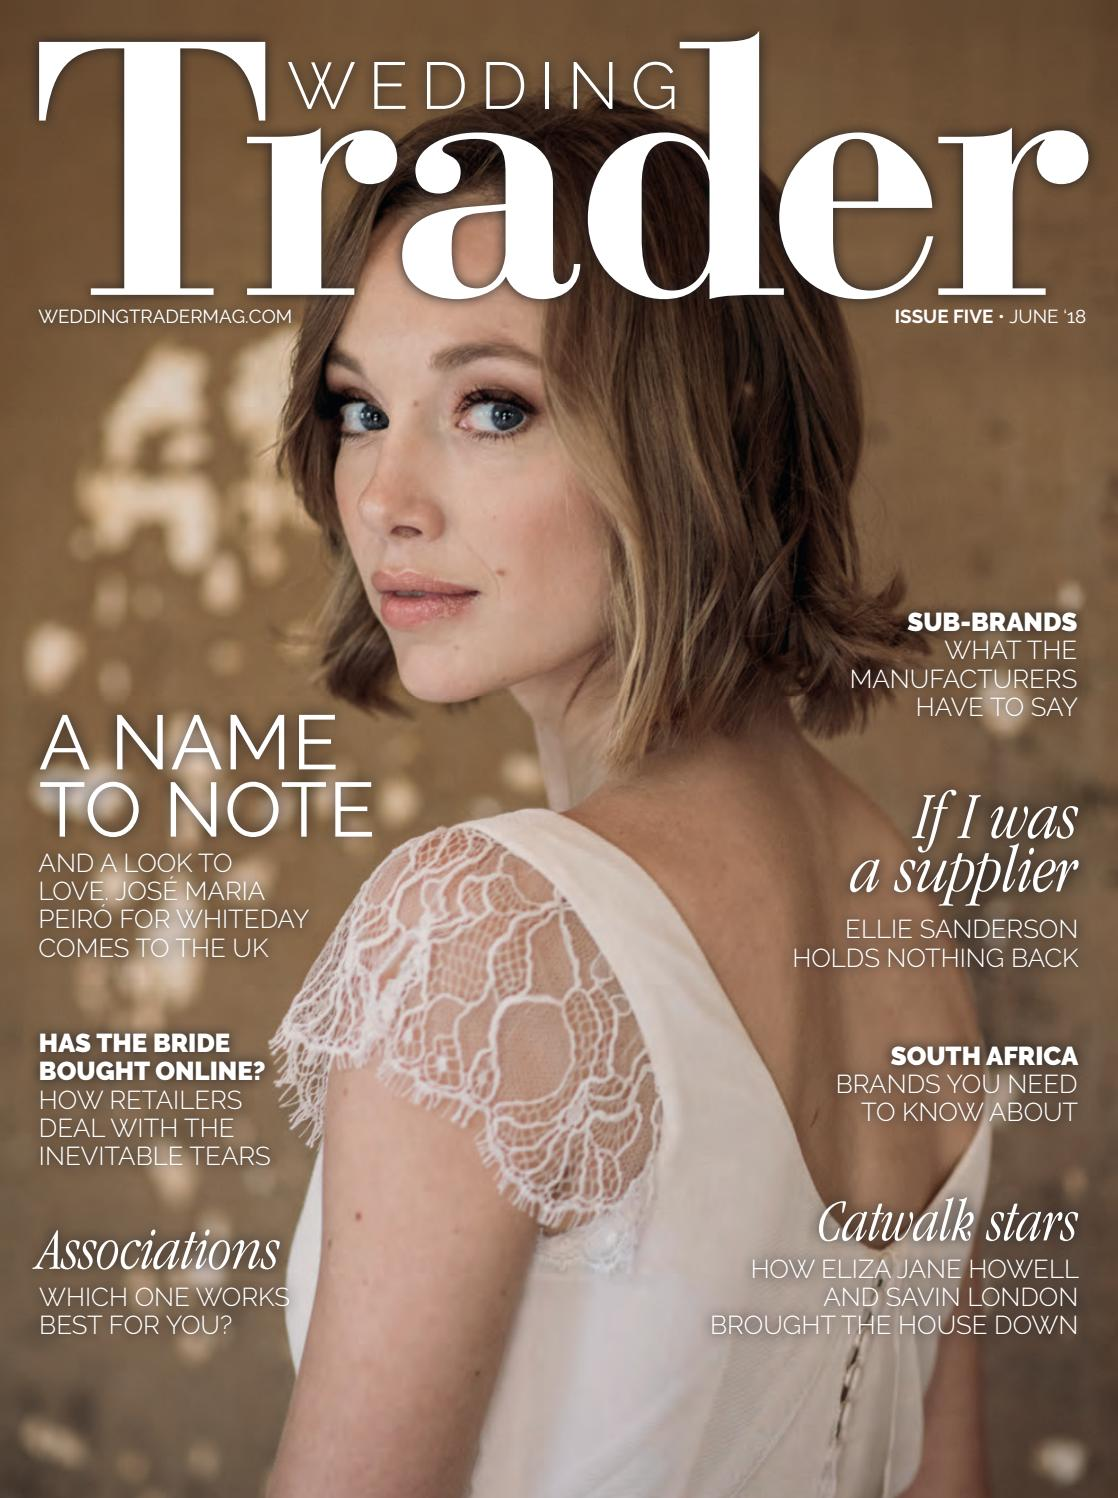 2200b46d122 Wedding Trader - issue 5 by Love Our Wedding - issuu